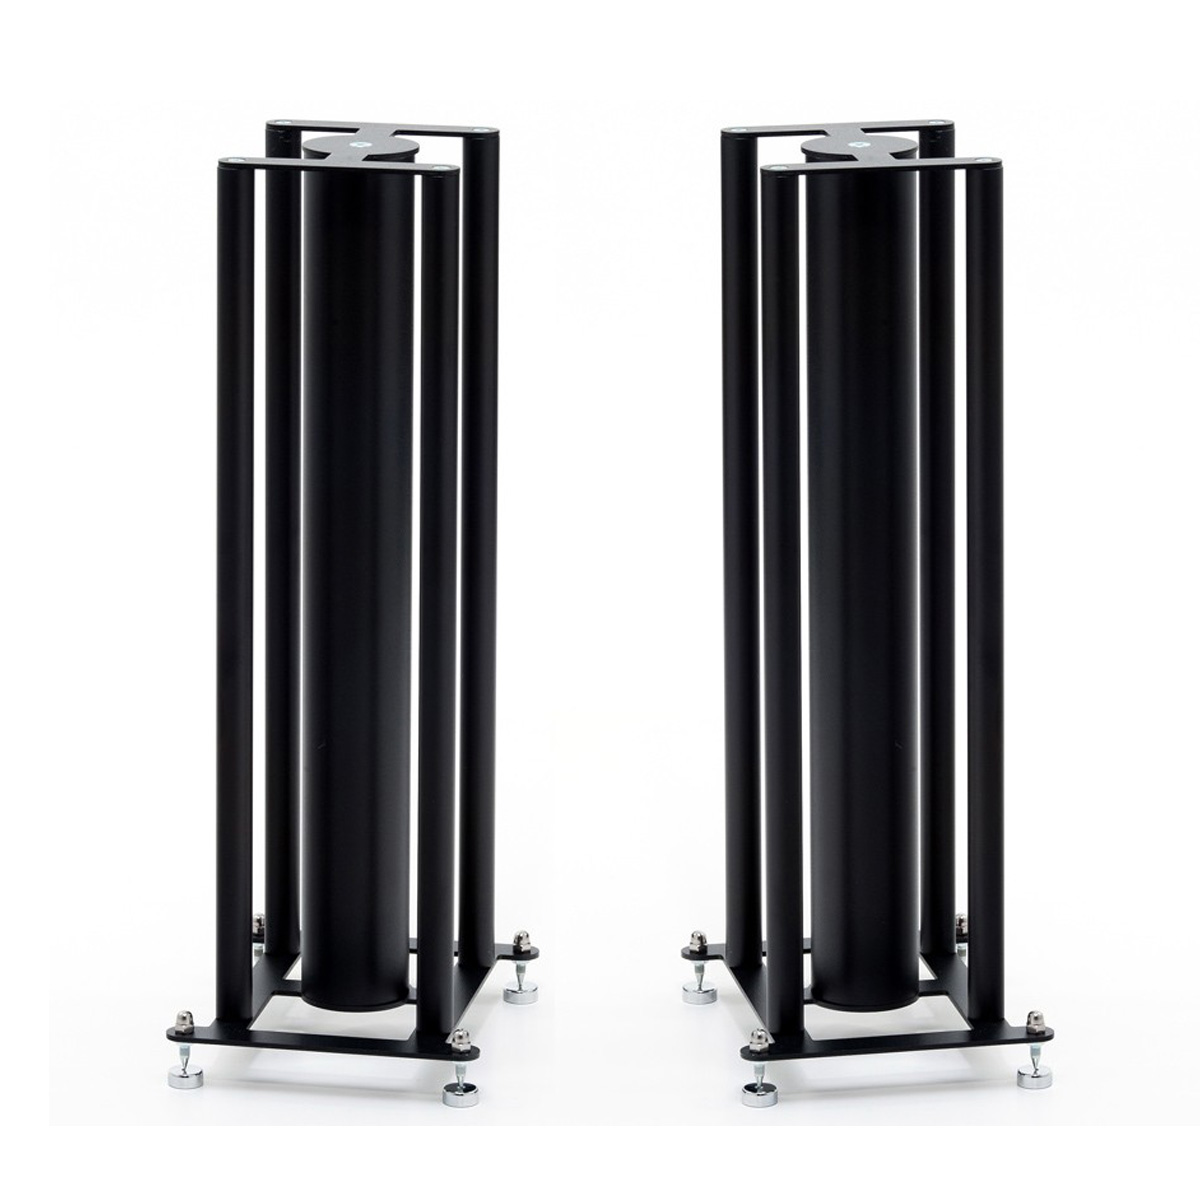 CD-FS104 Black 4 Column Speaker Stands